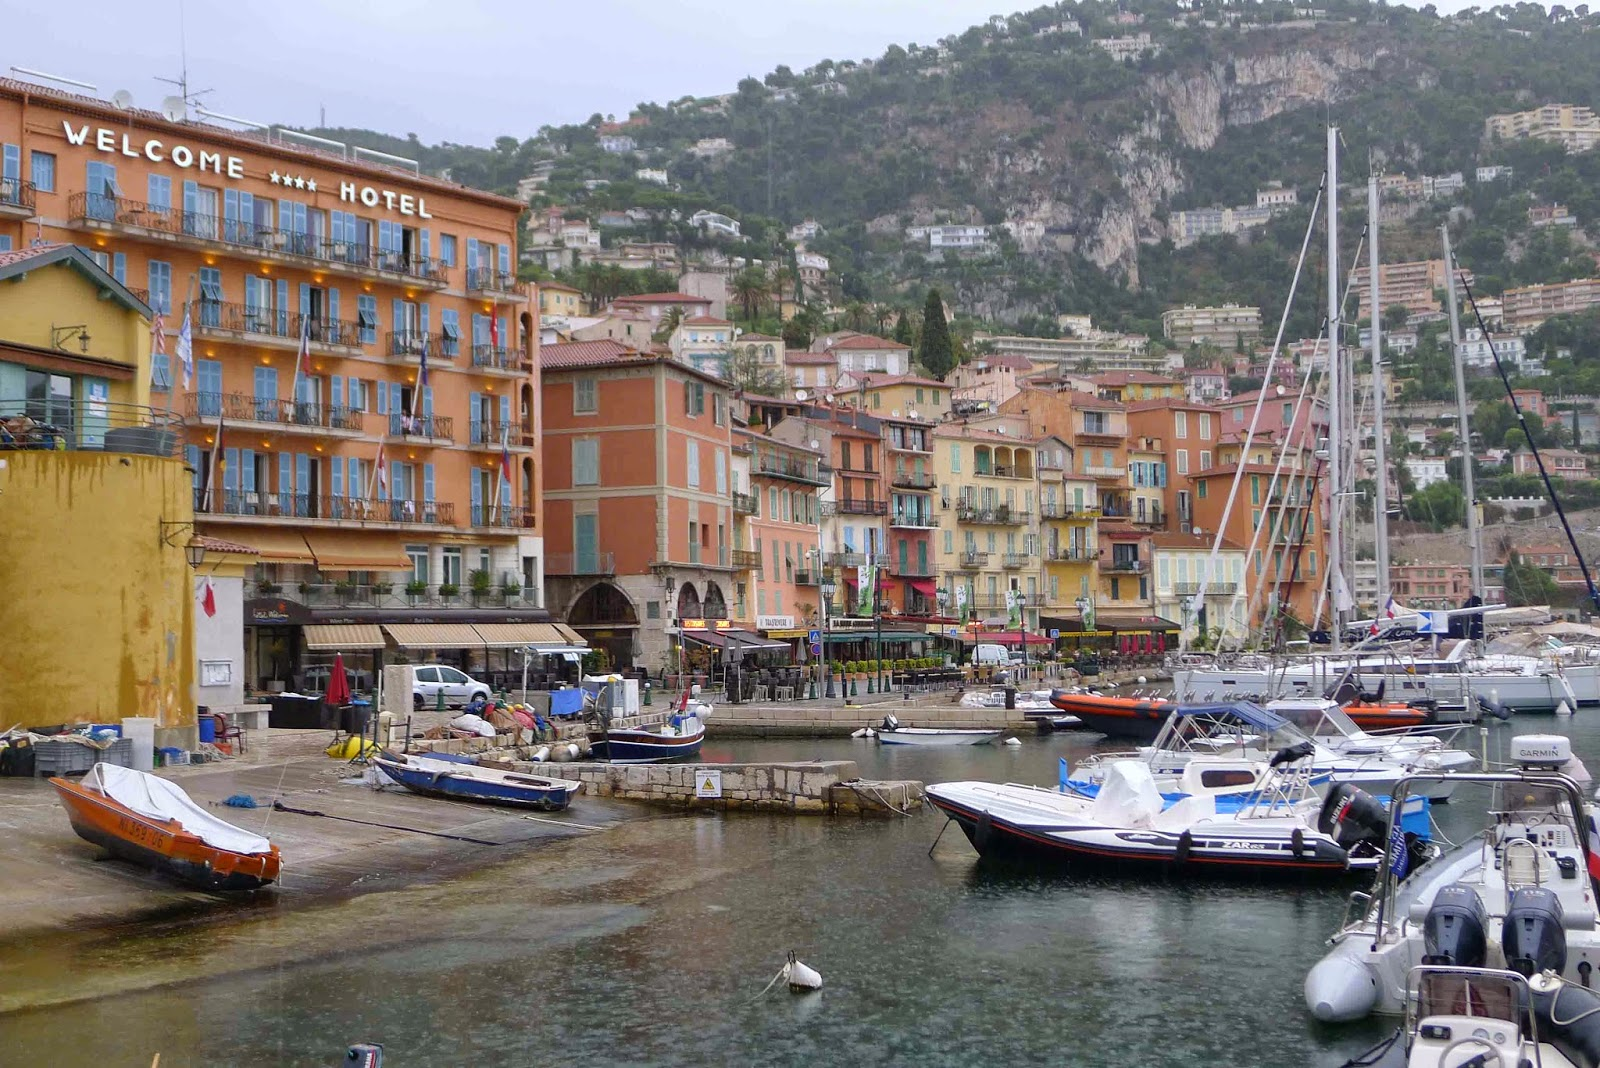 Welcome Hotel, Villefranche sur Mer